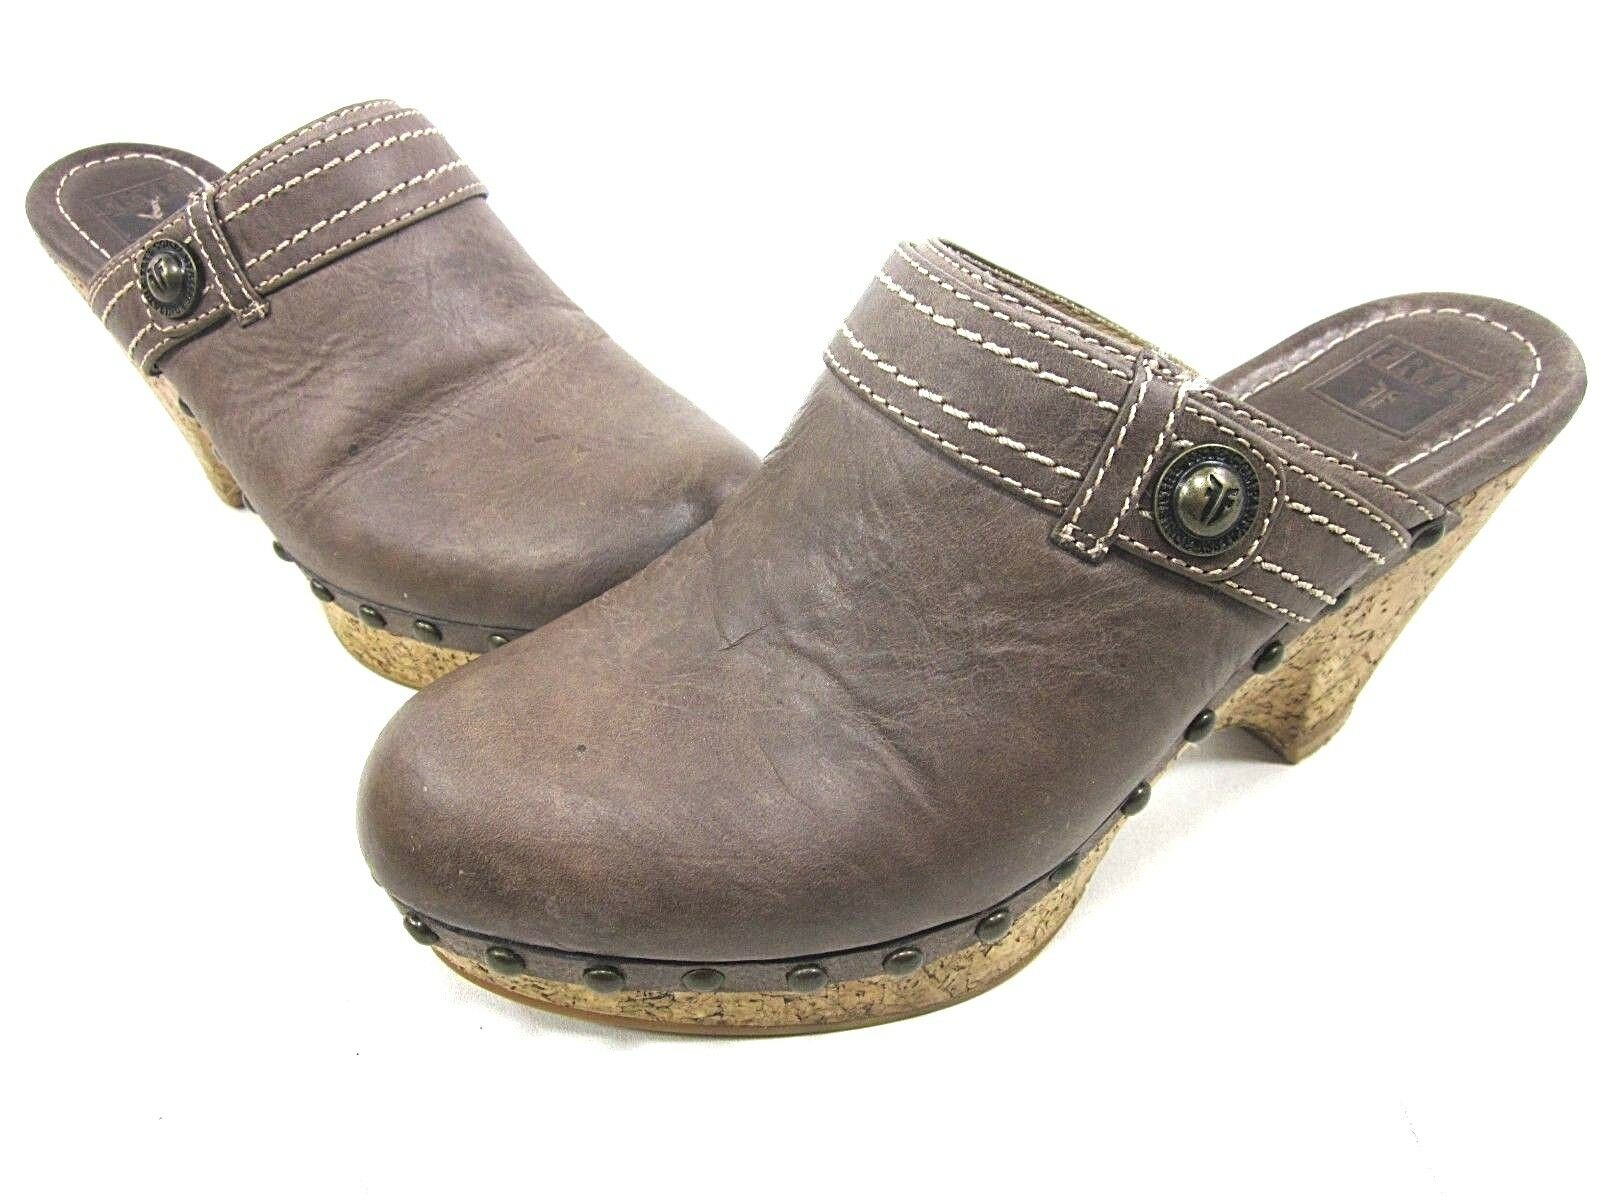 FRYE, AUDRA BUTTON CLOG, femmes, DARK marron, US 7.5M, LEATHER, PRE-OWNED